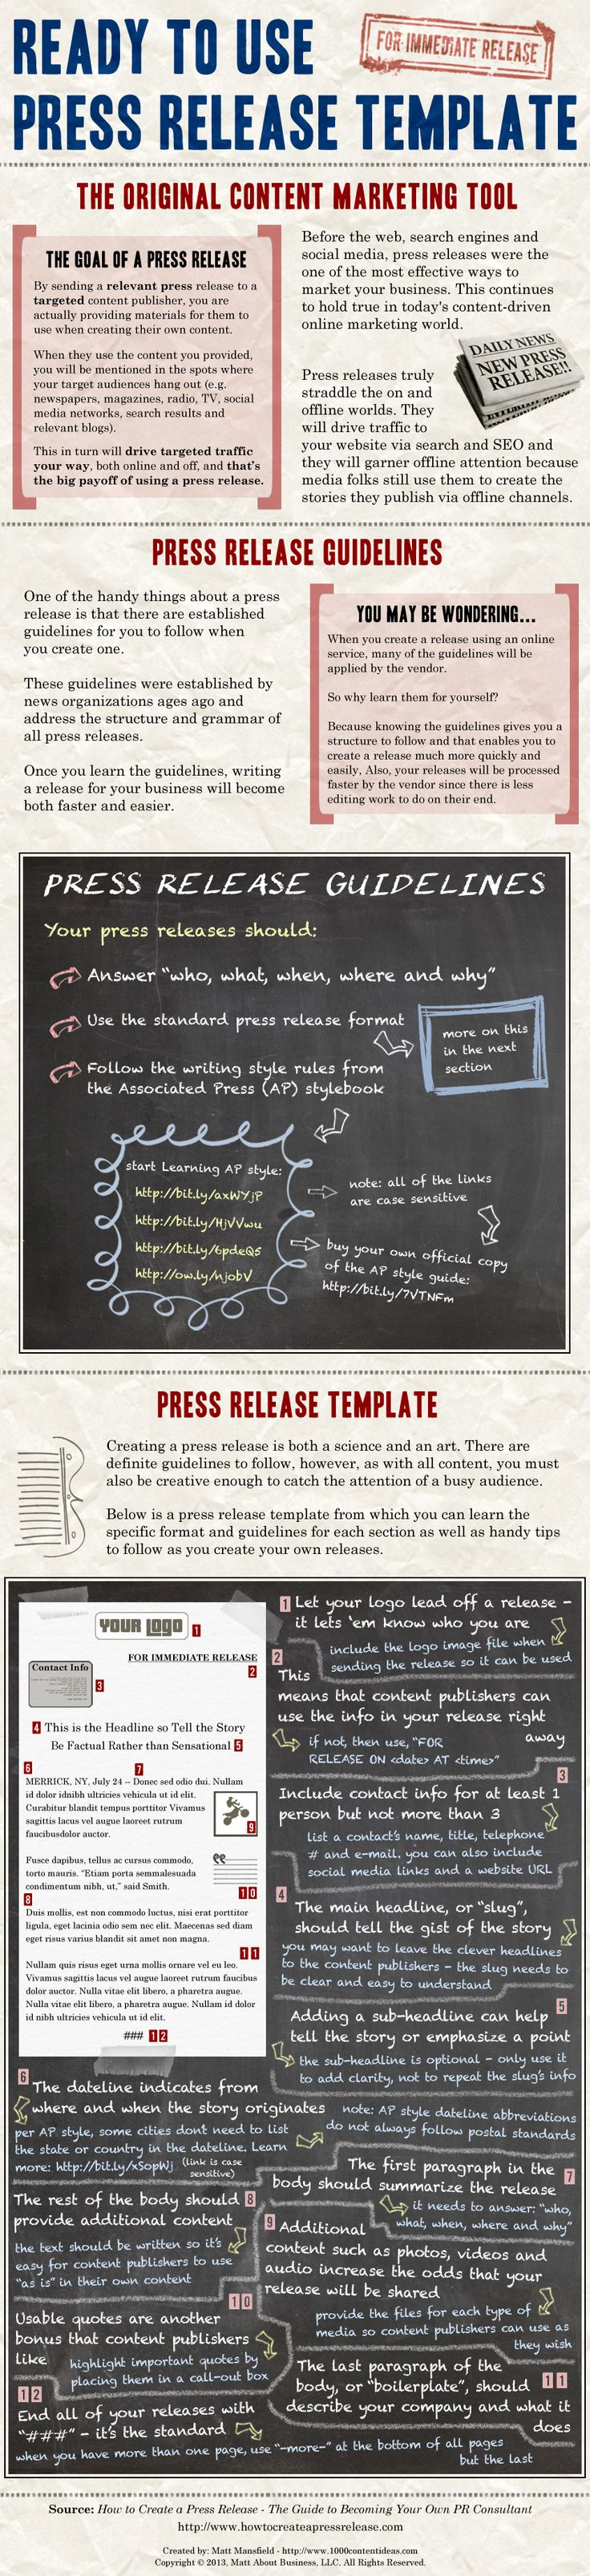 Ready to Use #PressRelease Template  Bakehouse curated Facebook tips for Yorkshire Marketers